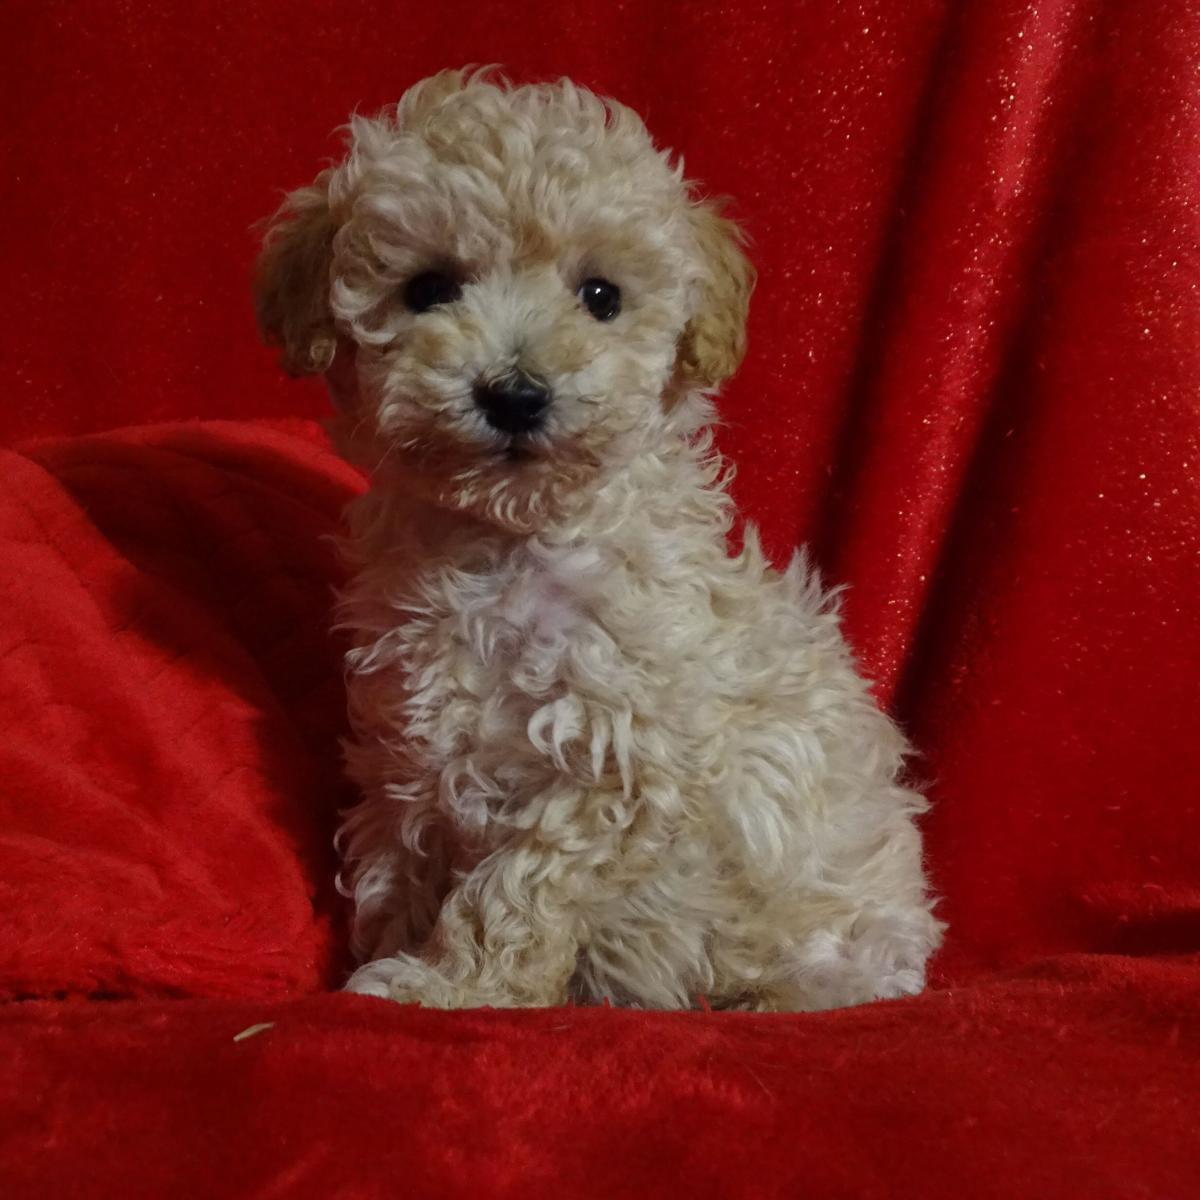 MINI POODLE Puppies, males $600, females $800,  YORKIE-Chihuahua puppies $600 image 1